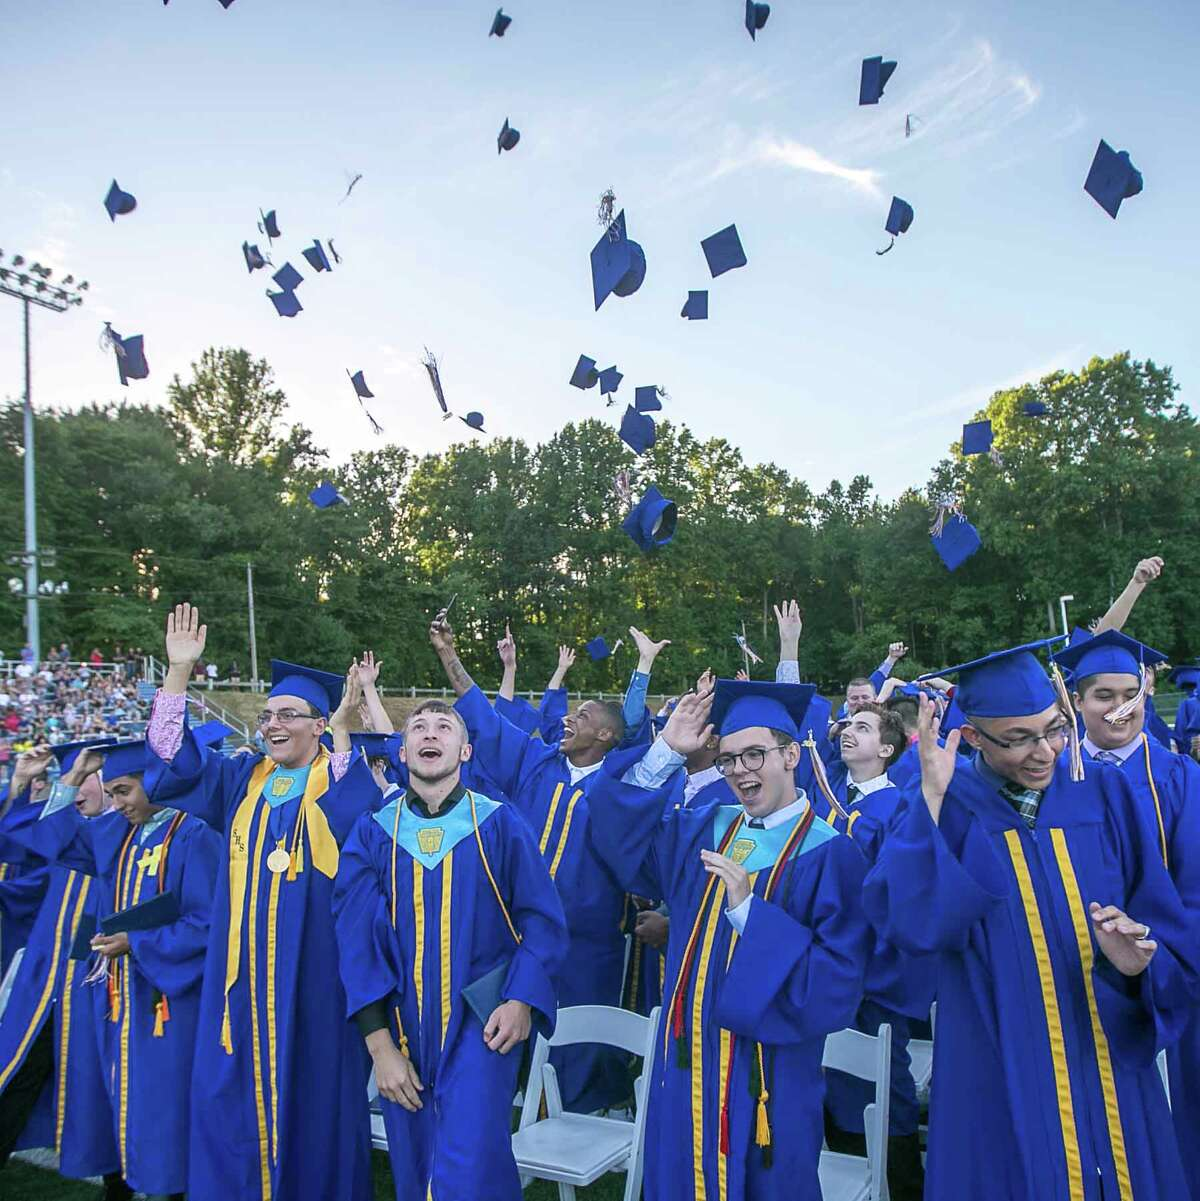 (John Vanacore/For Hearst Connecticut Media) Seymour High School graduates celebrate at the conclusion of Commencement exercises Tuesday evening.